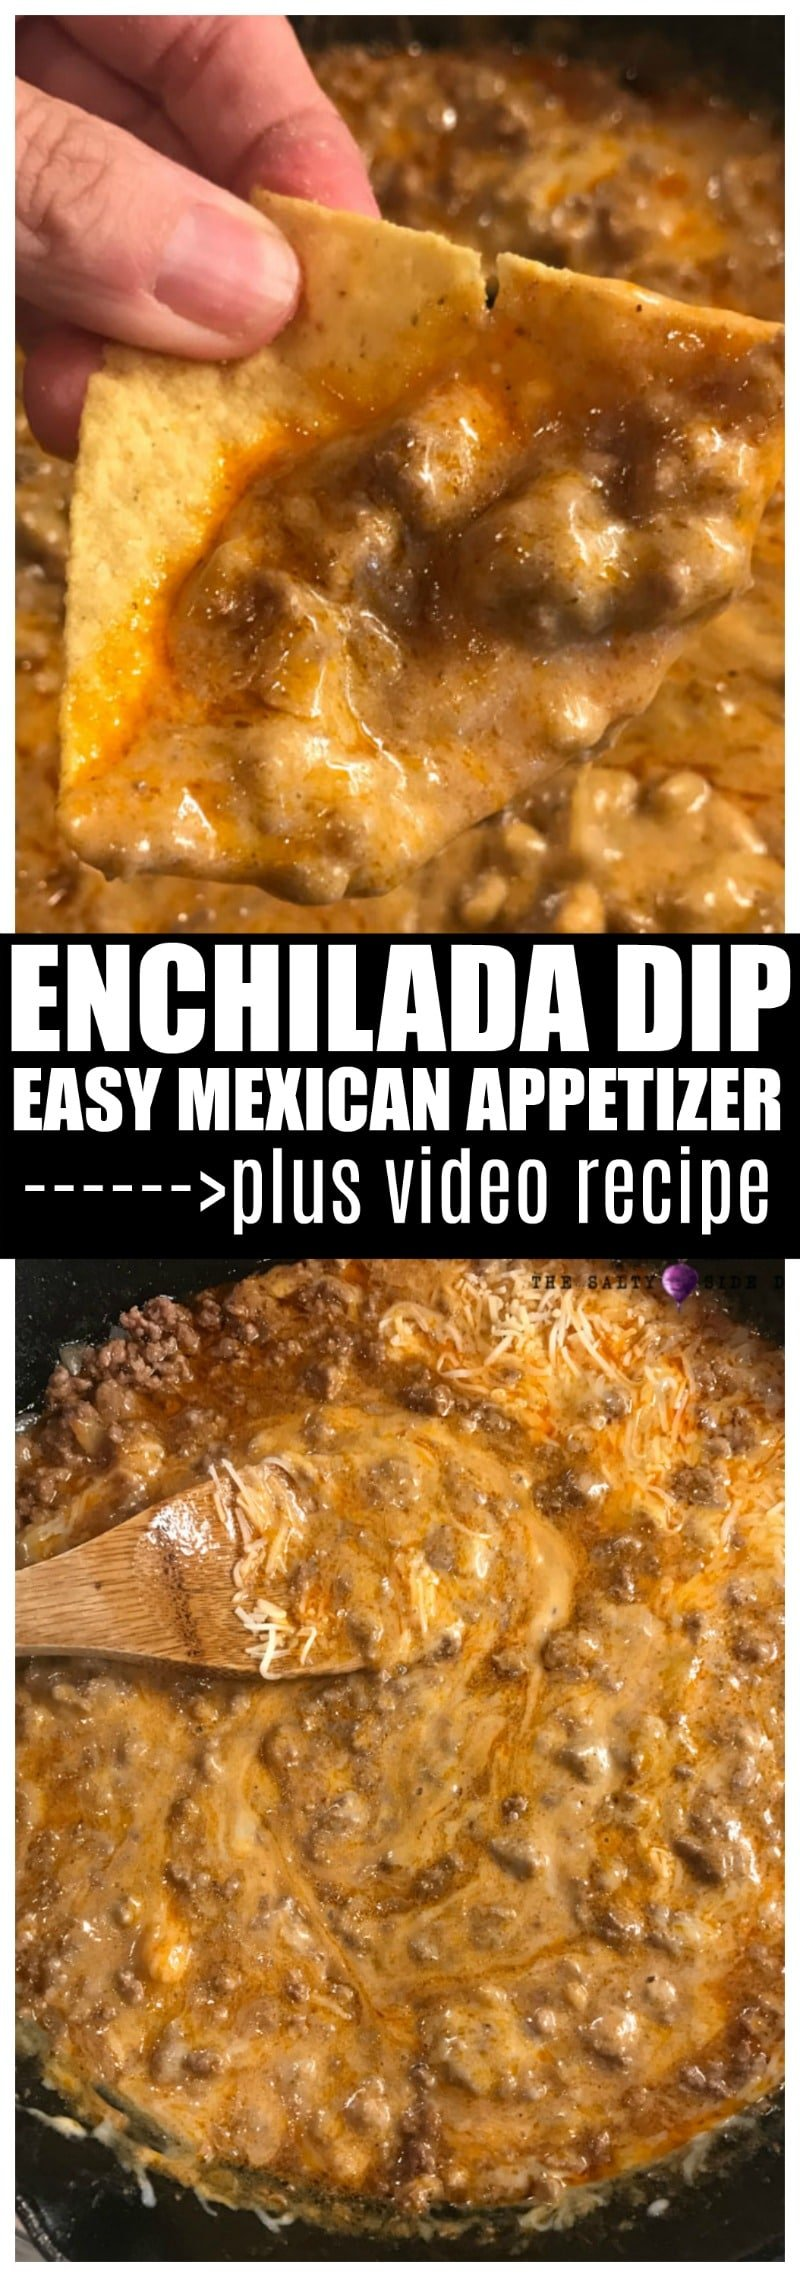 Enchilada Dip with Ground Beef is a Delicious Mexican beef appetizer or side dish that is ready to serve in 15 minutes flat. #sidedish #mexican #dips #dip #saltysidedish #appetizer #beef #groundbeef #cheese